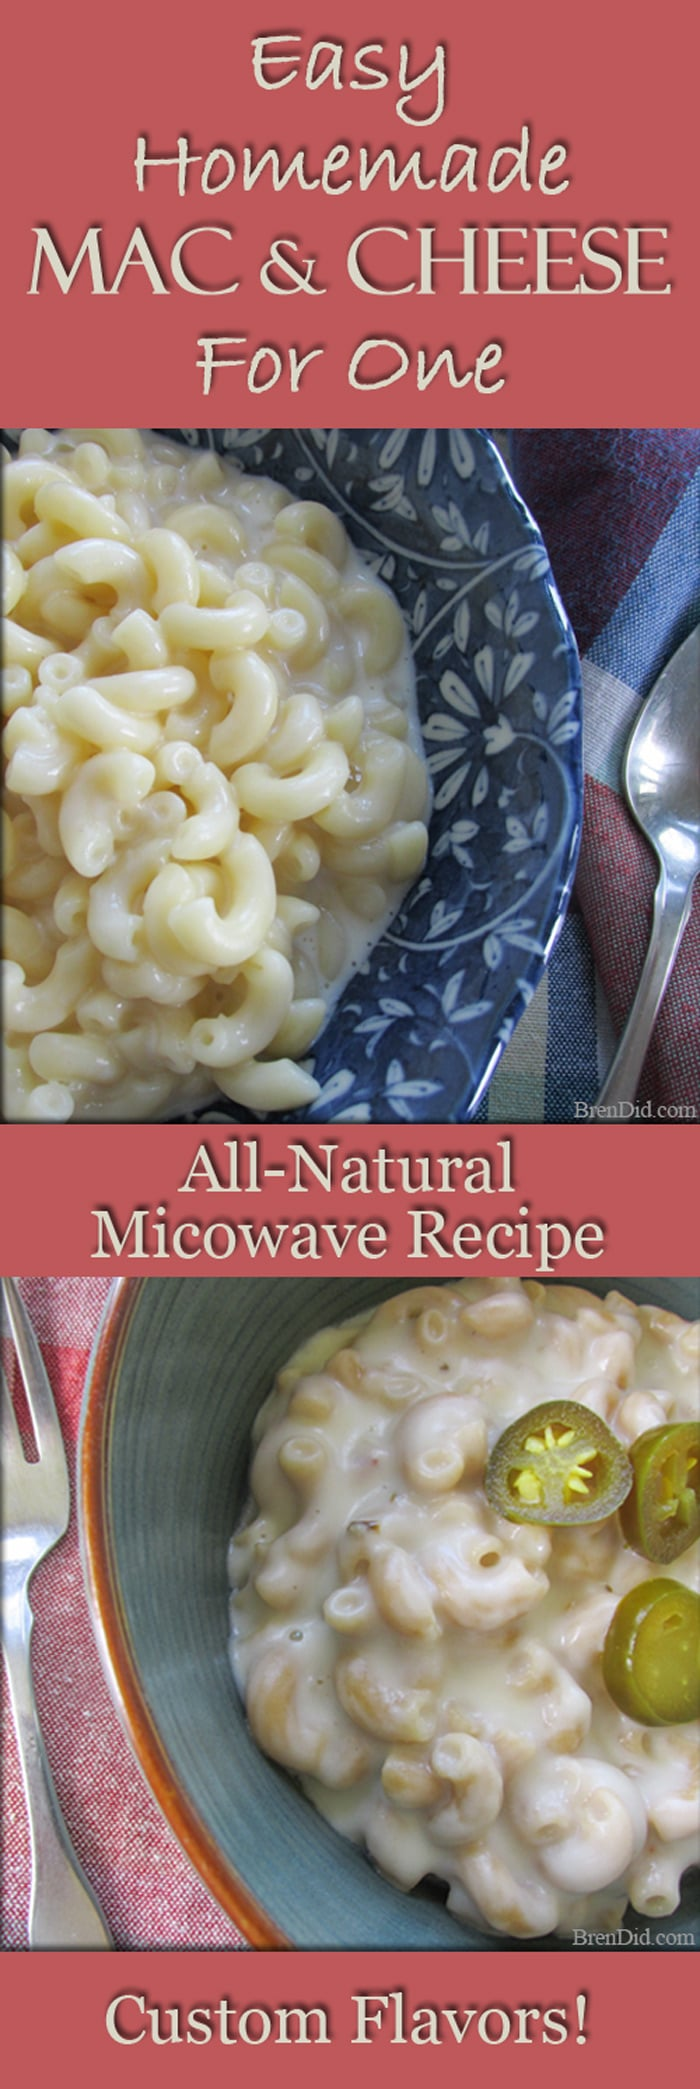 Easy Homemade Mac and Cheese for One: all-natural recipe uses simple ingredients to make healthy macaroni and cheese for one.